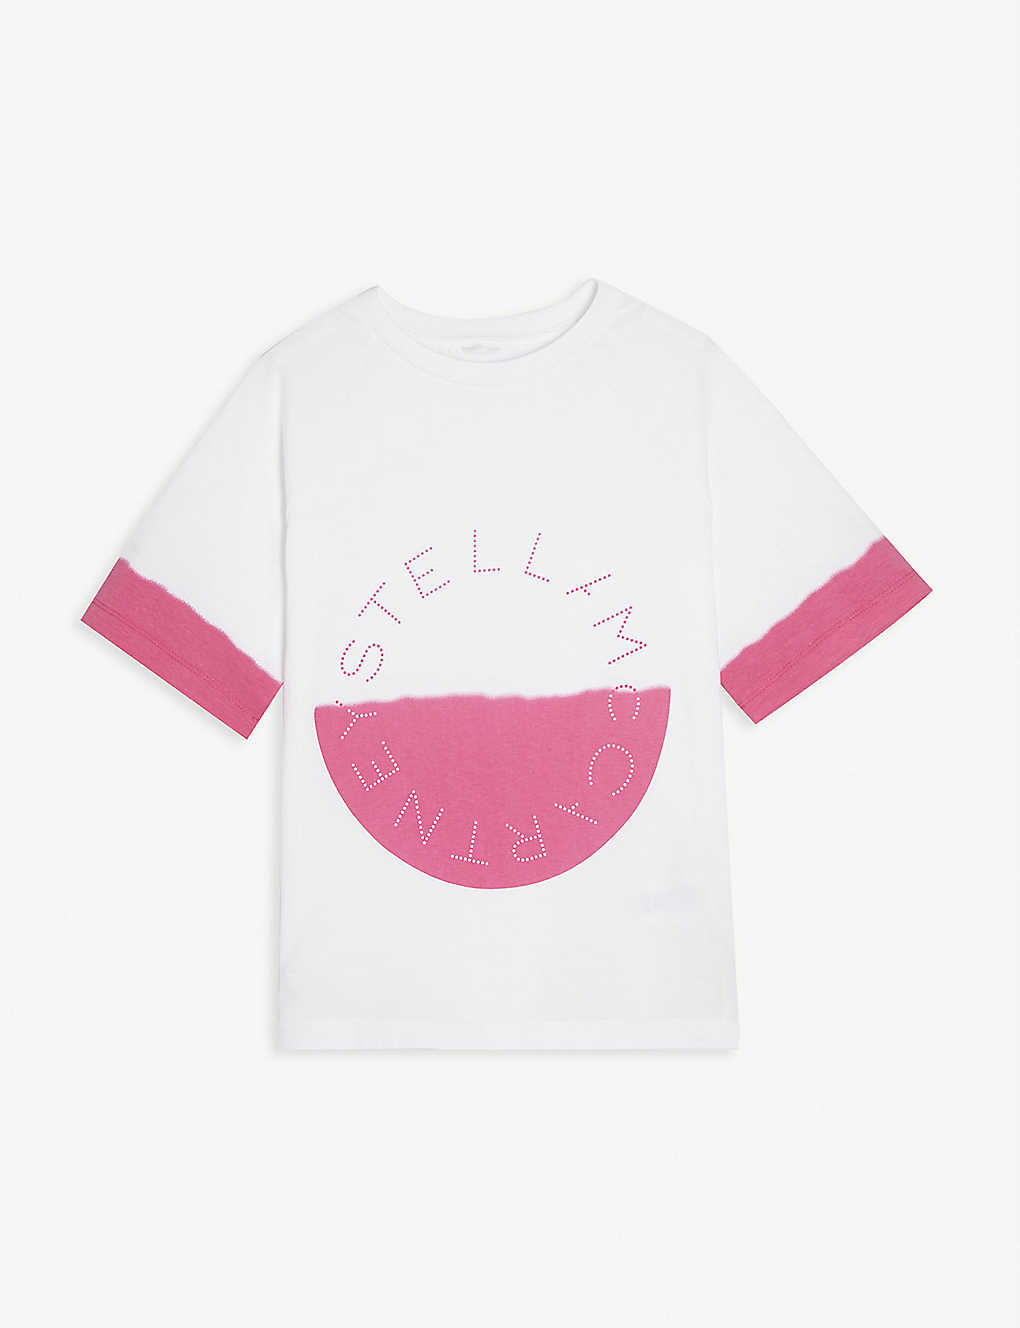 STELLA MCCARTNEY: Half-circle dip dye cotton T-shirt 4 - 16 years